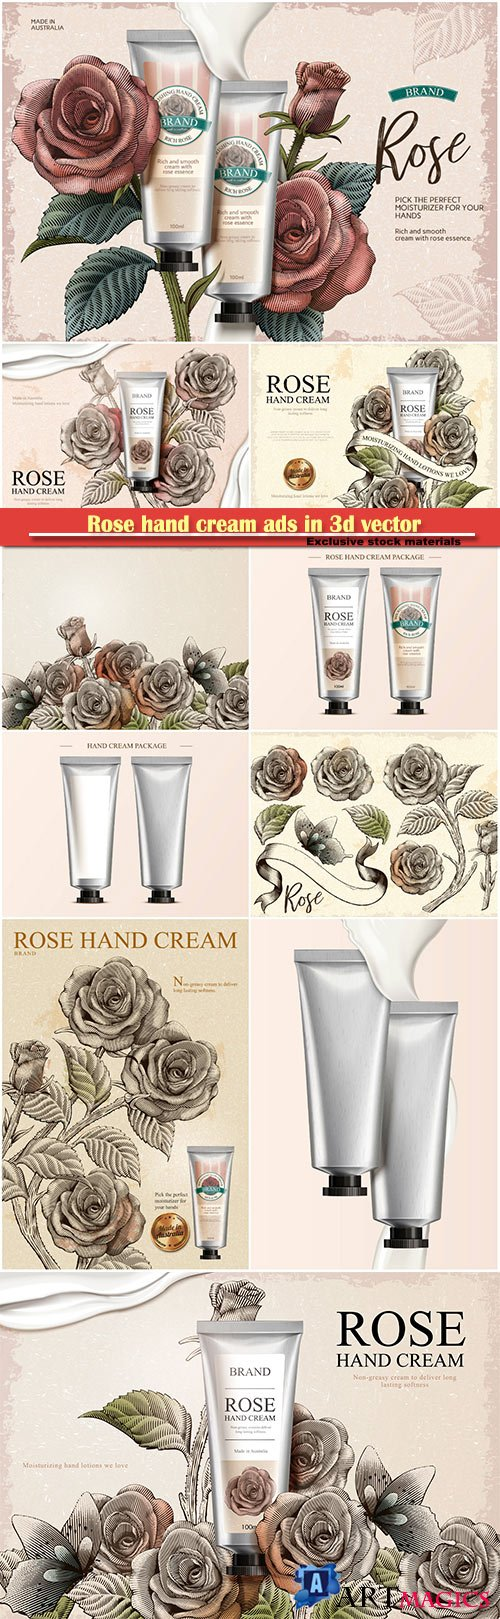 Rose hand cream ads in 3d vector illustration